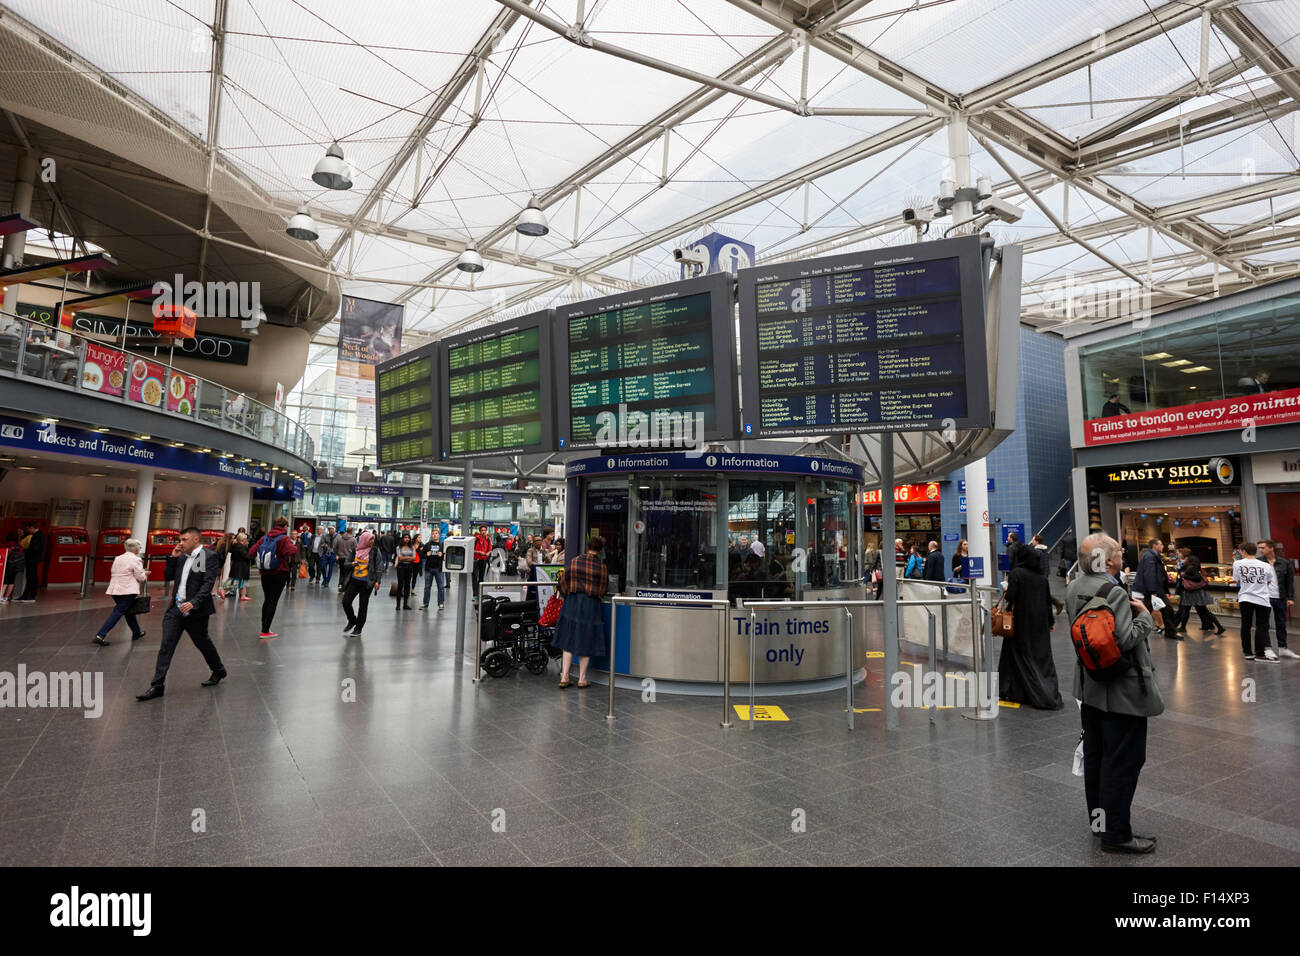 train information display at Piccadilly train station Manchester UK - Stock Image